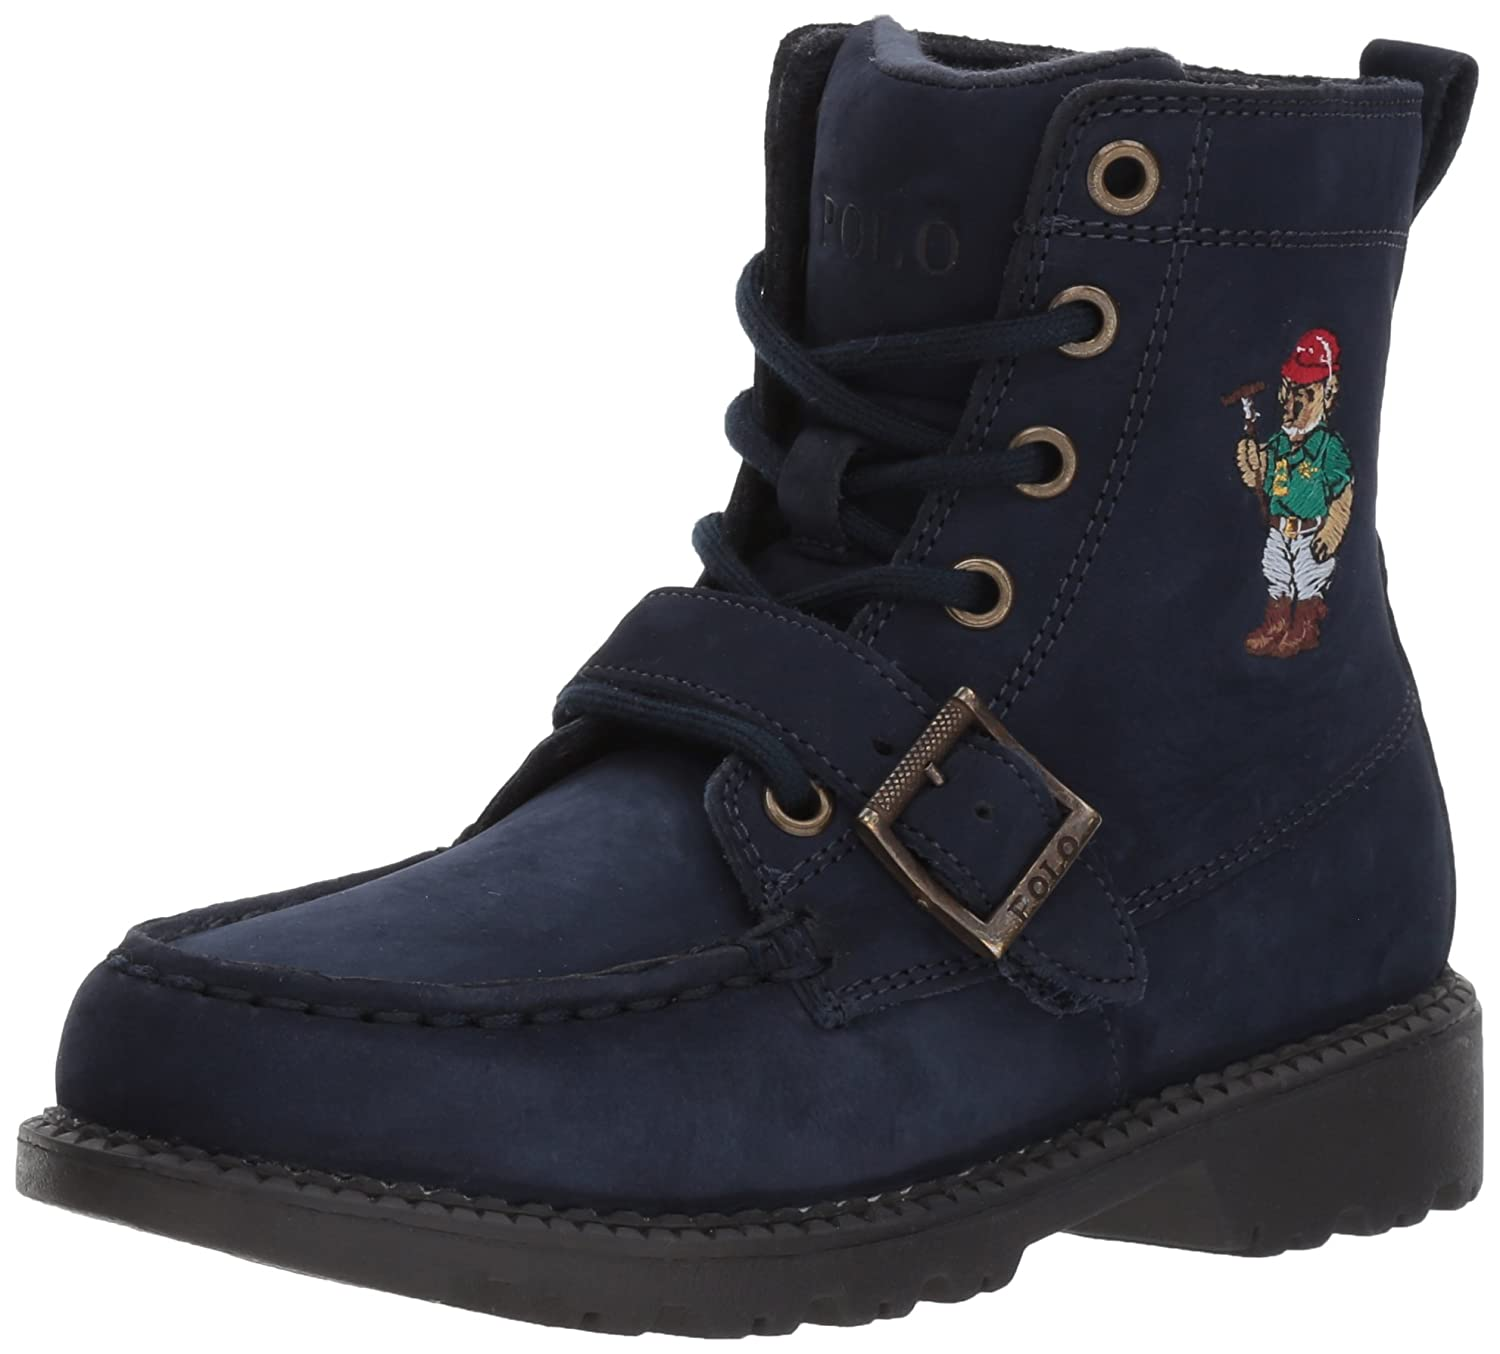 Polo Ralph Lauren  Ranger Hi Ii Fashion Boot B06XZM4M4Z 11.5 Medium US Little Kid|Navy Nubuck